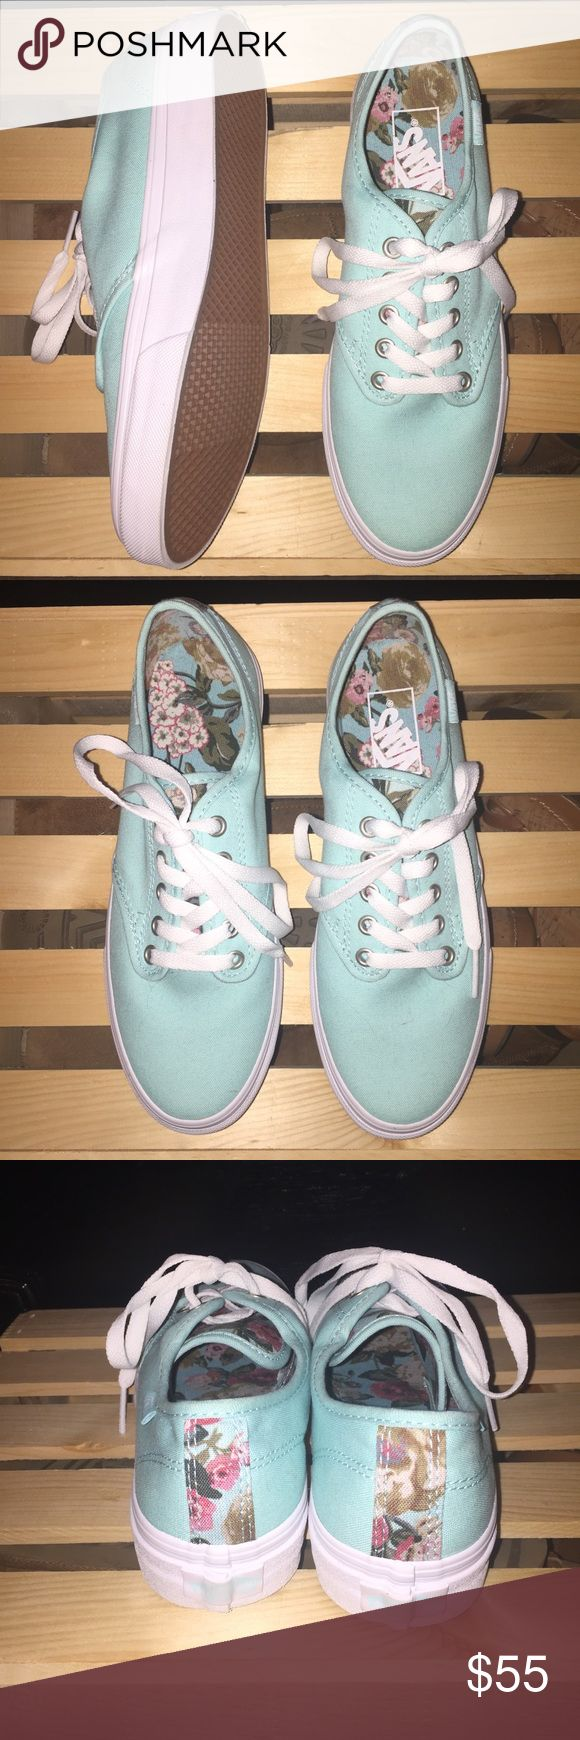 Mint Vans with floral print These Vans have never been worn and are in perfect condition but I don't have the box they came in anymore. Vans Shoes